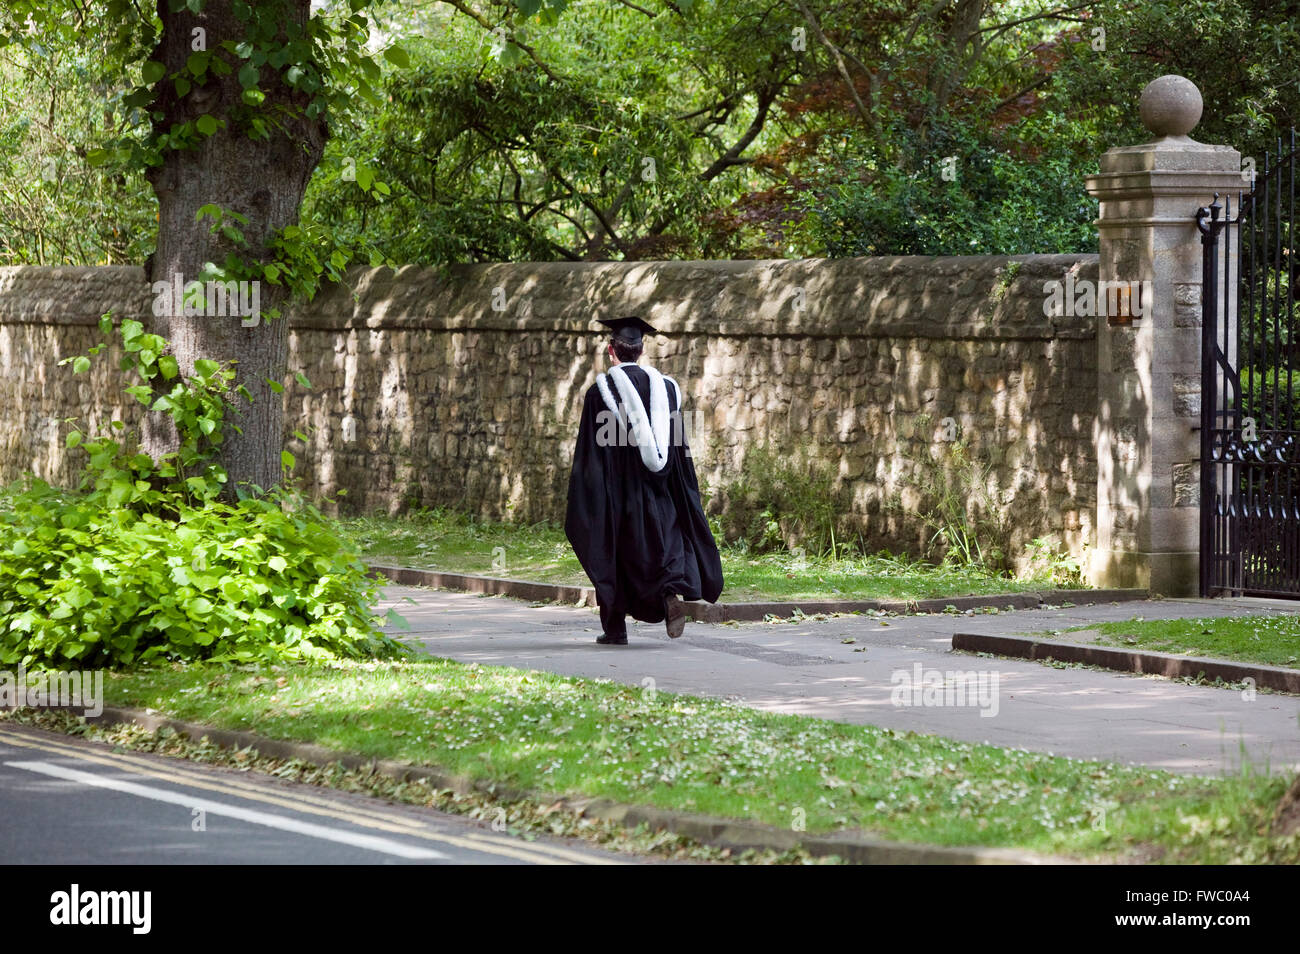 Oxfrod student walking through the streets in gown and mortar board. - Stock Image